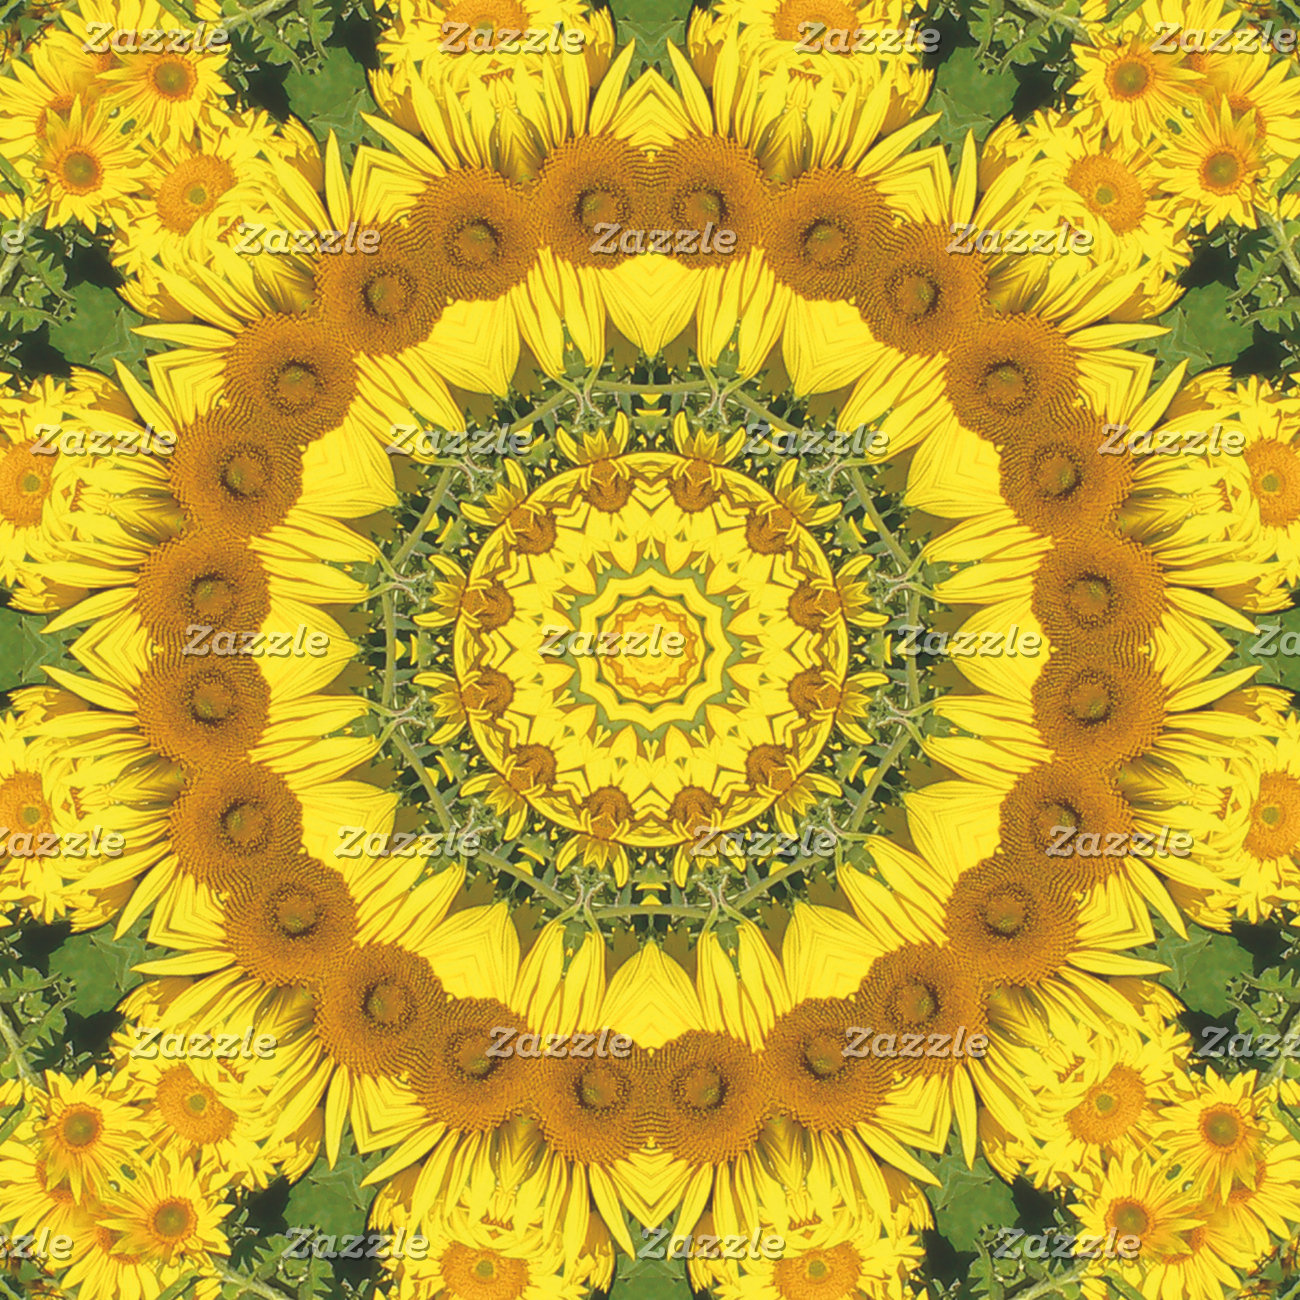 _ Sunflowers, Nature-Mandalas